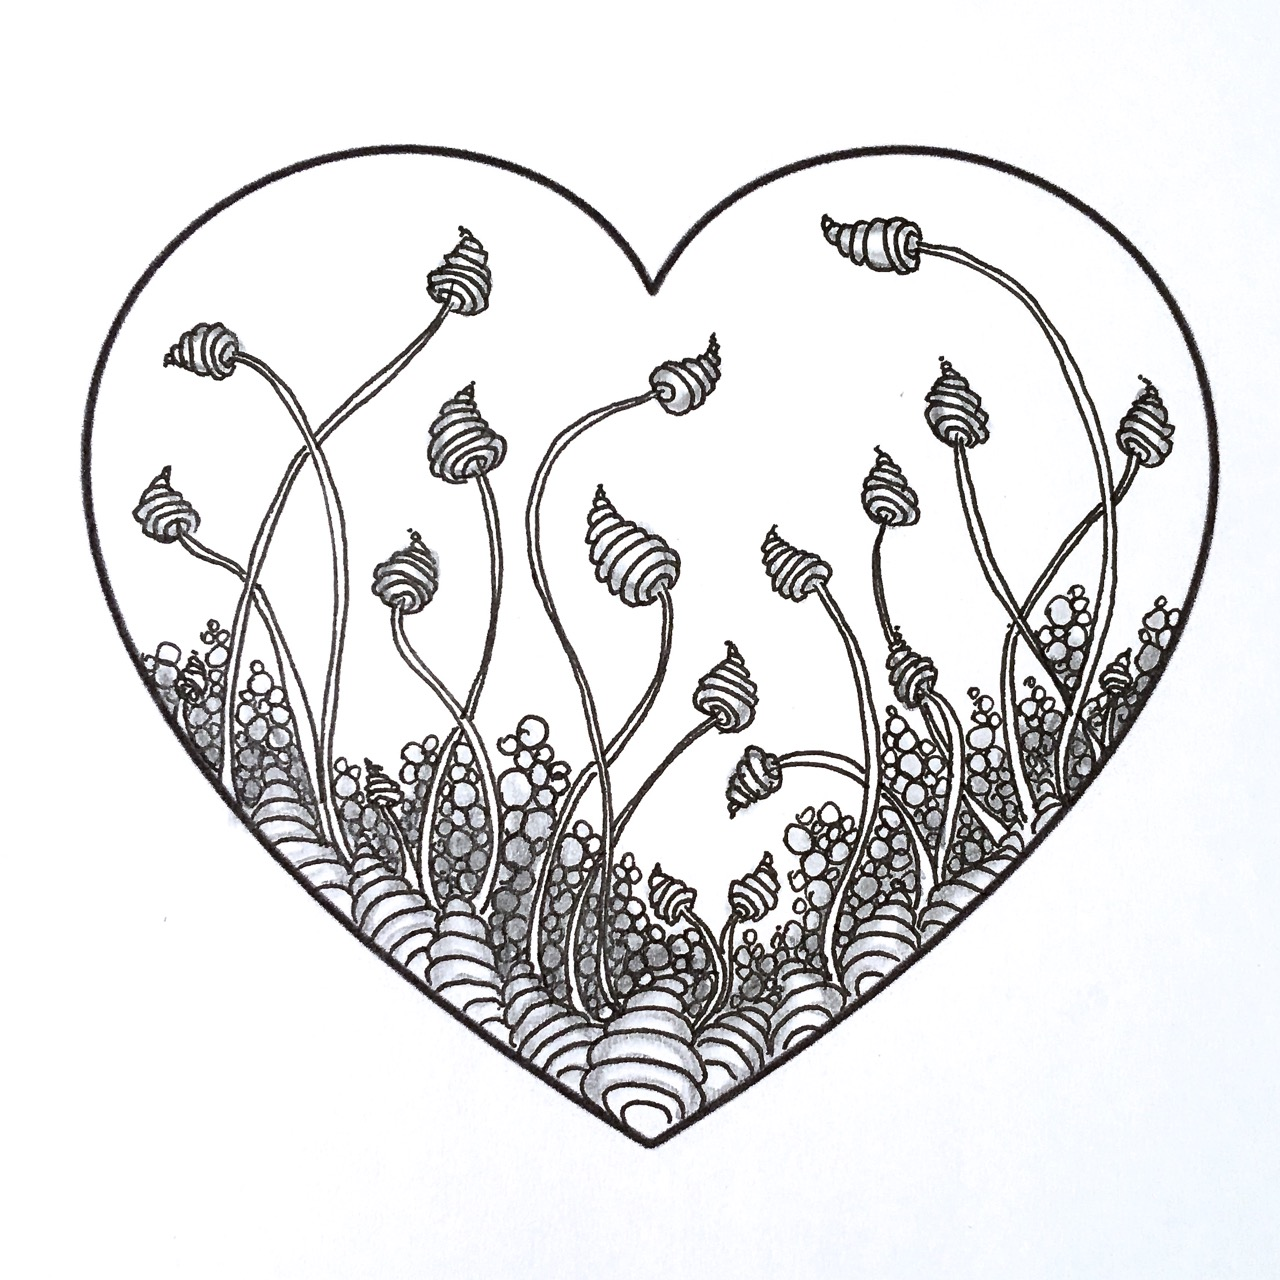 1280x1280 Zentangle Valentine's Heart Series Designs 2016 Always Choose